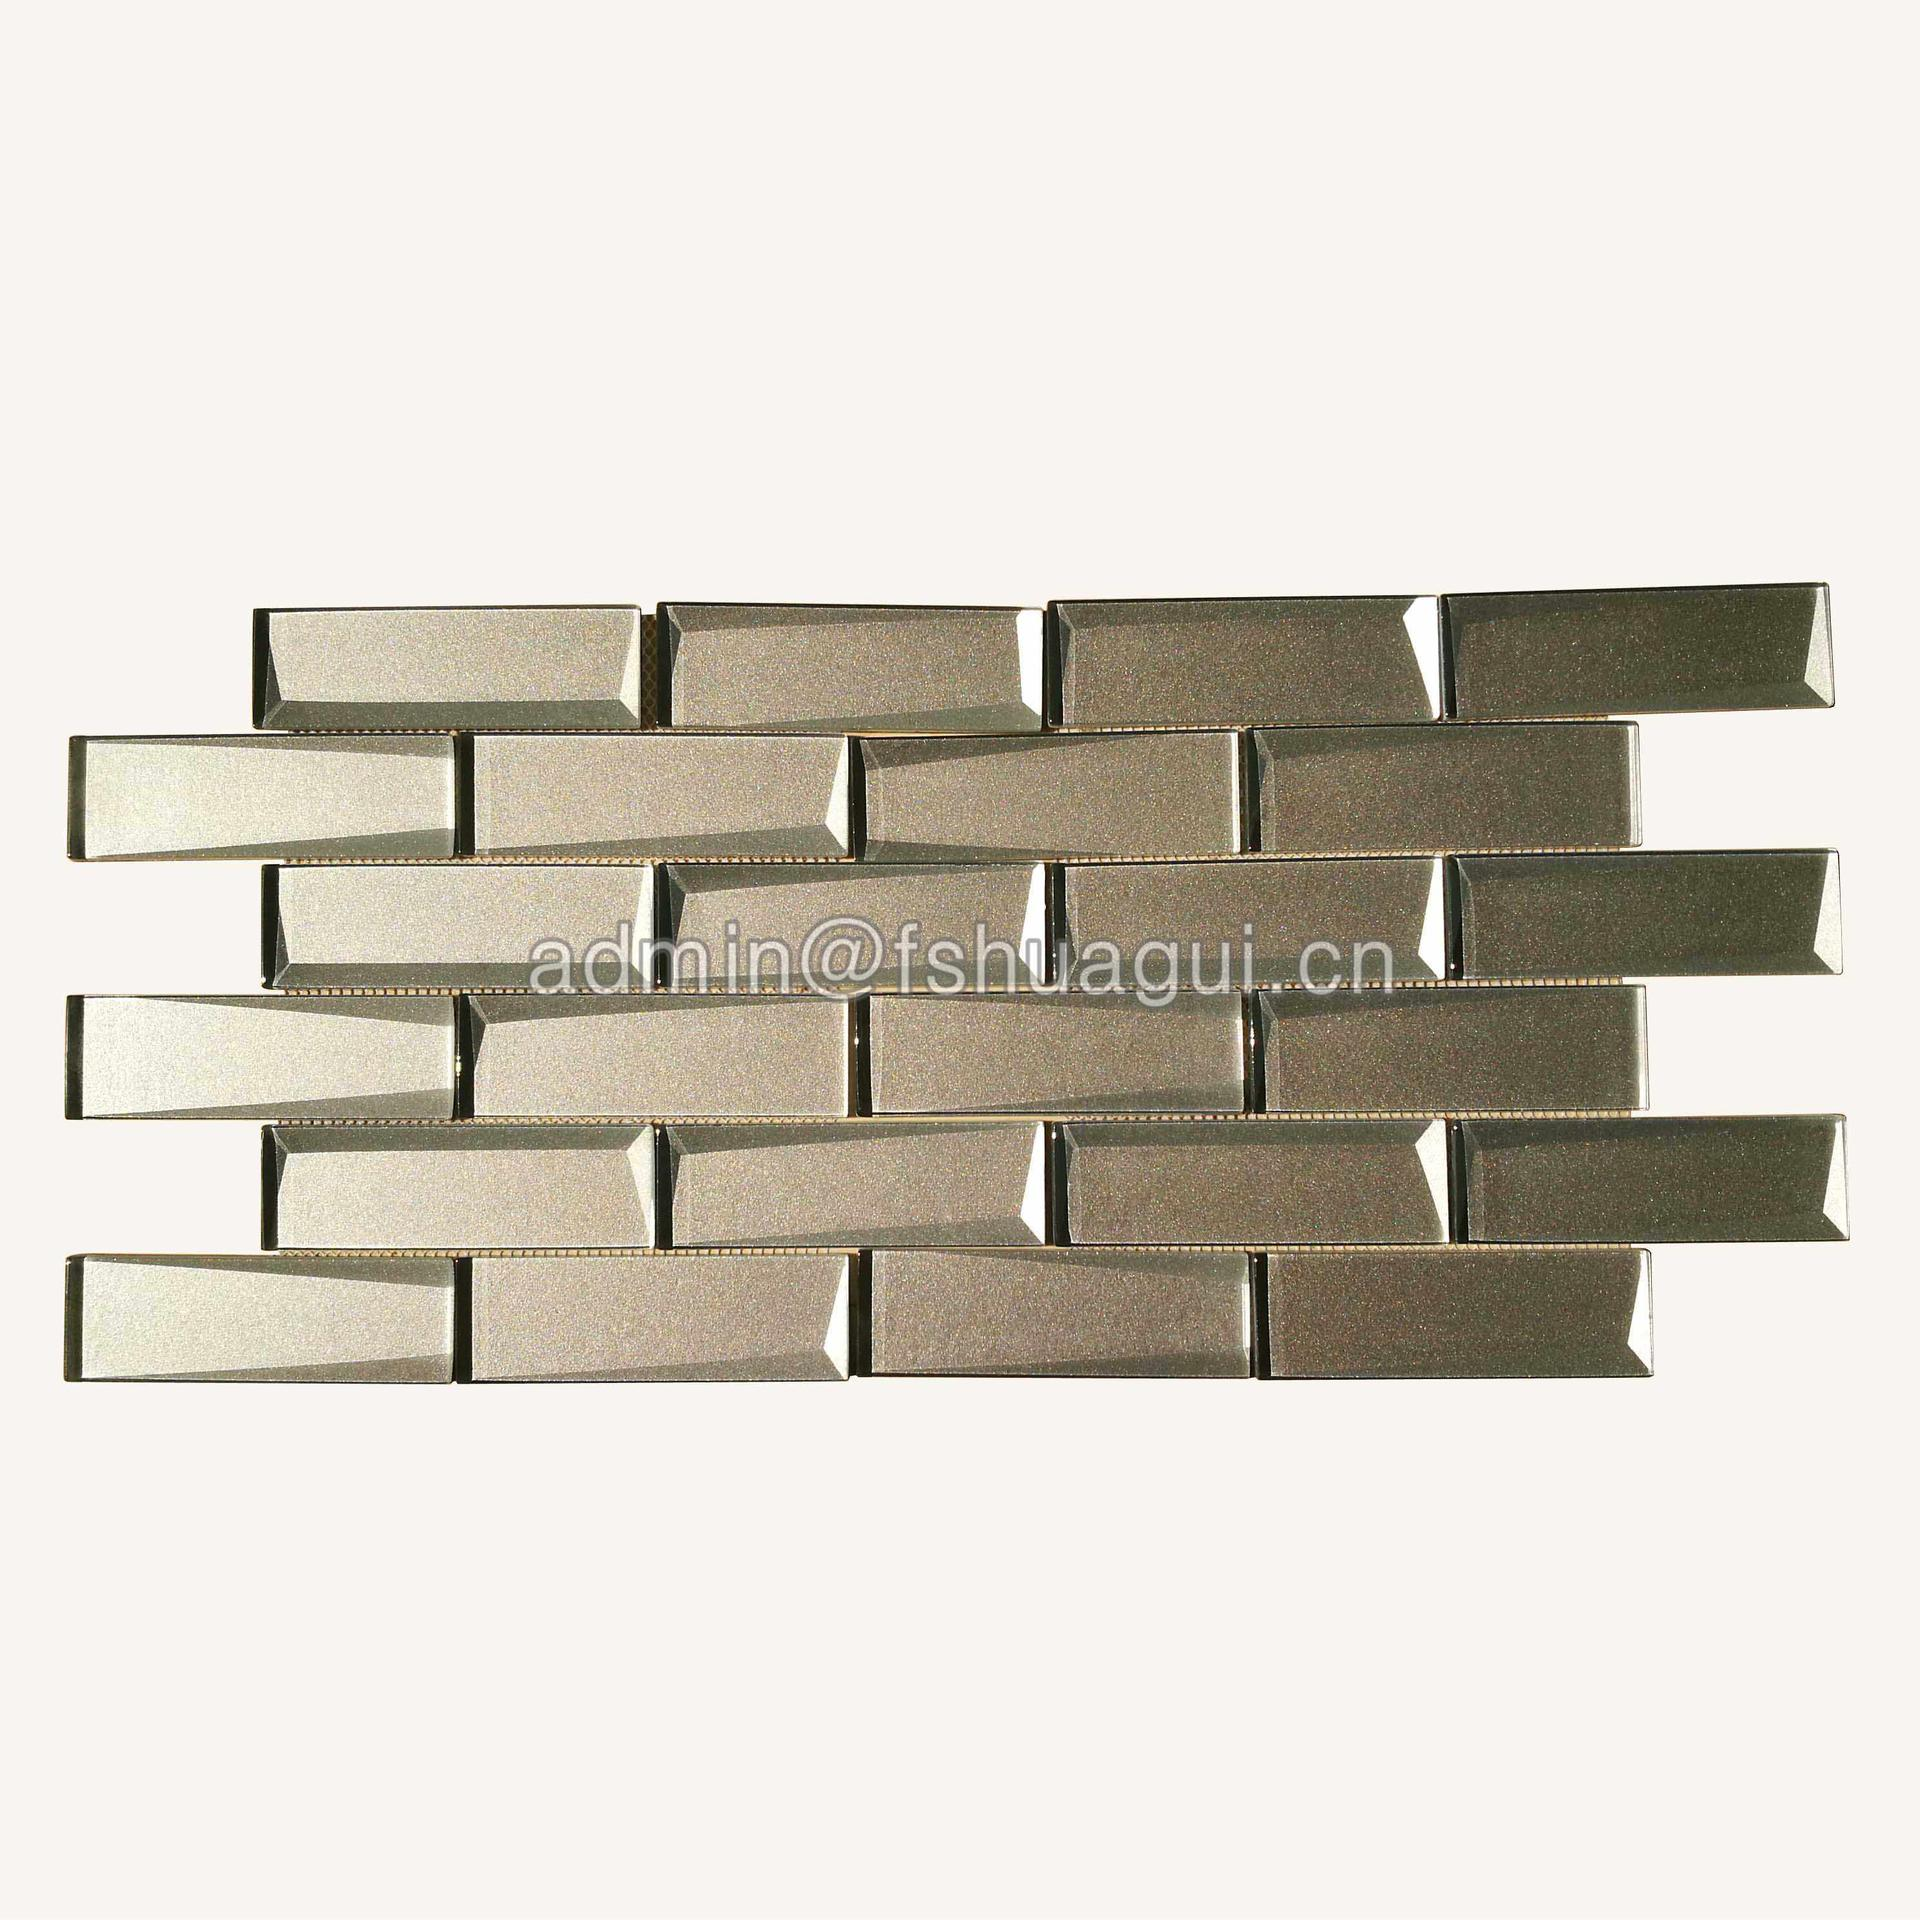 Cold Spray Glass Mosaic Tile for Wall Backsplash HG-HB014